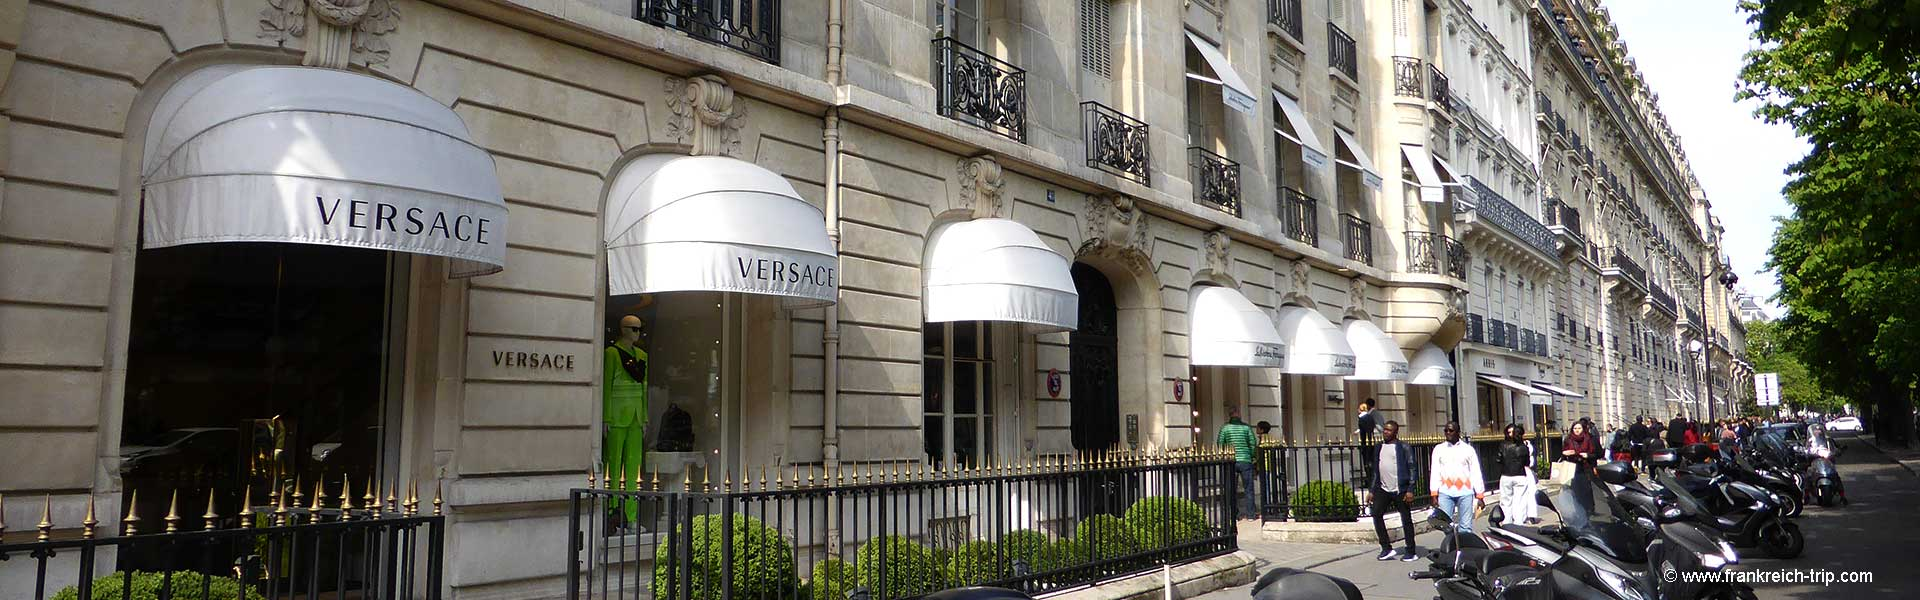 Avenue Montaigne Luxus Shopping Paris